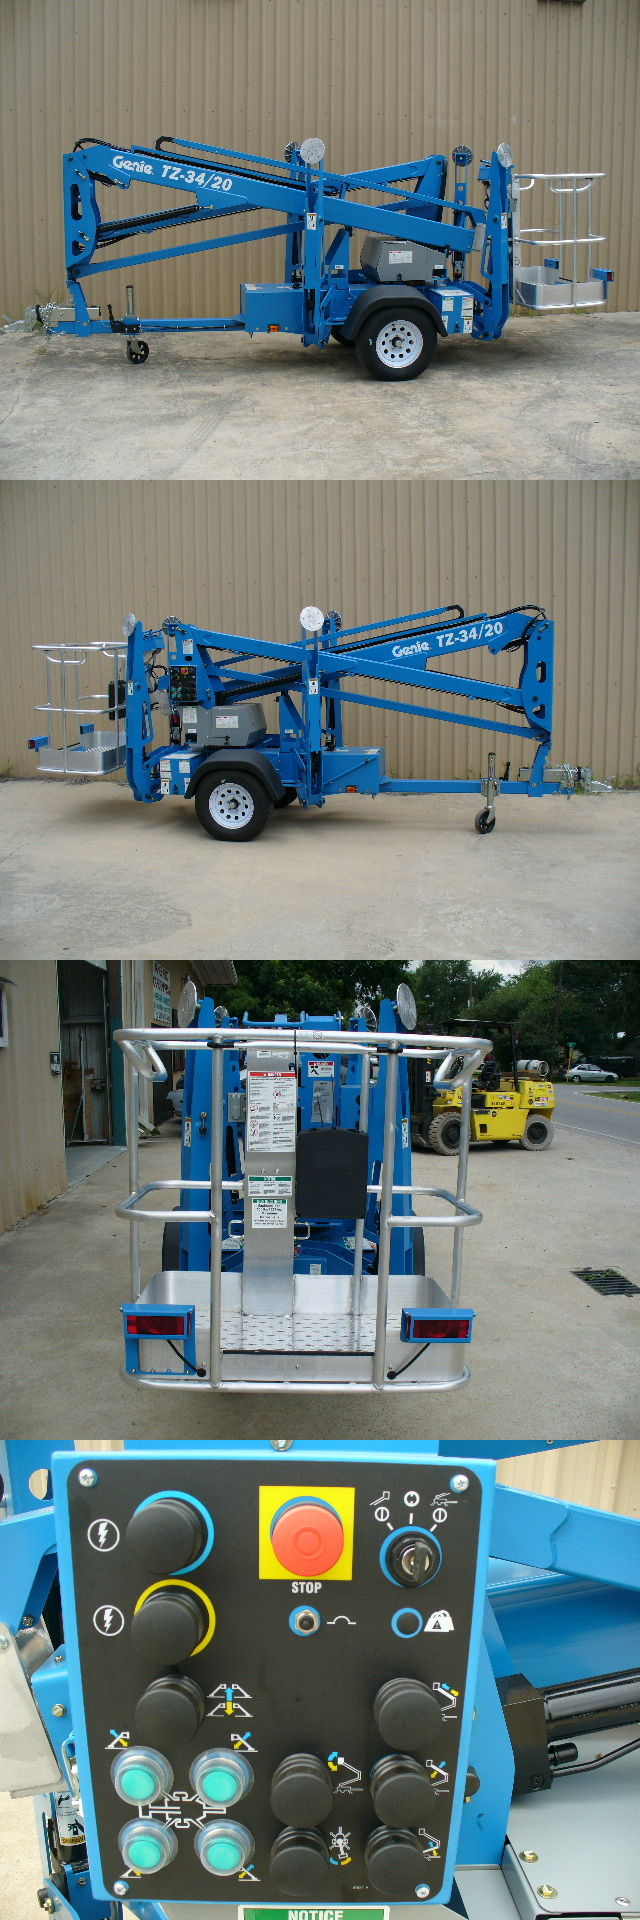 e1f7edec3eb90235843edcd794b32b3e heavy equipment 2017 genie tz 34 20 towable trailer mounted genie tz 34 20 wiring diagram at bayanpartner.co